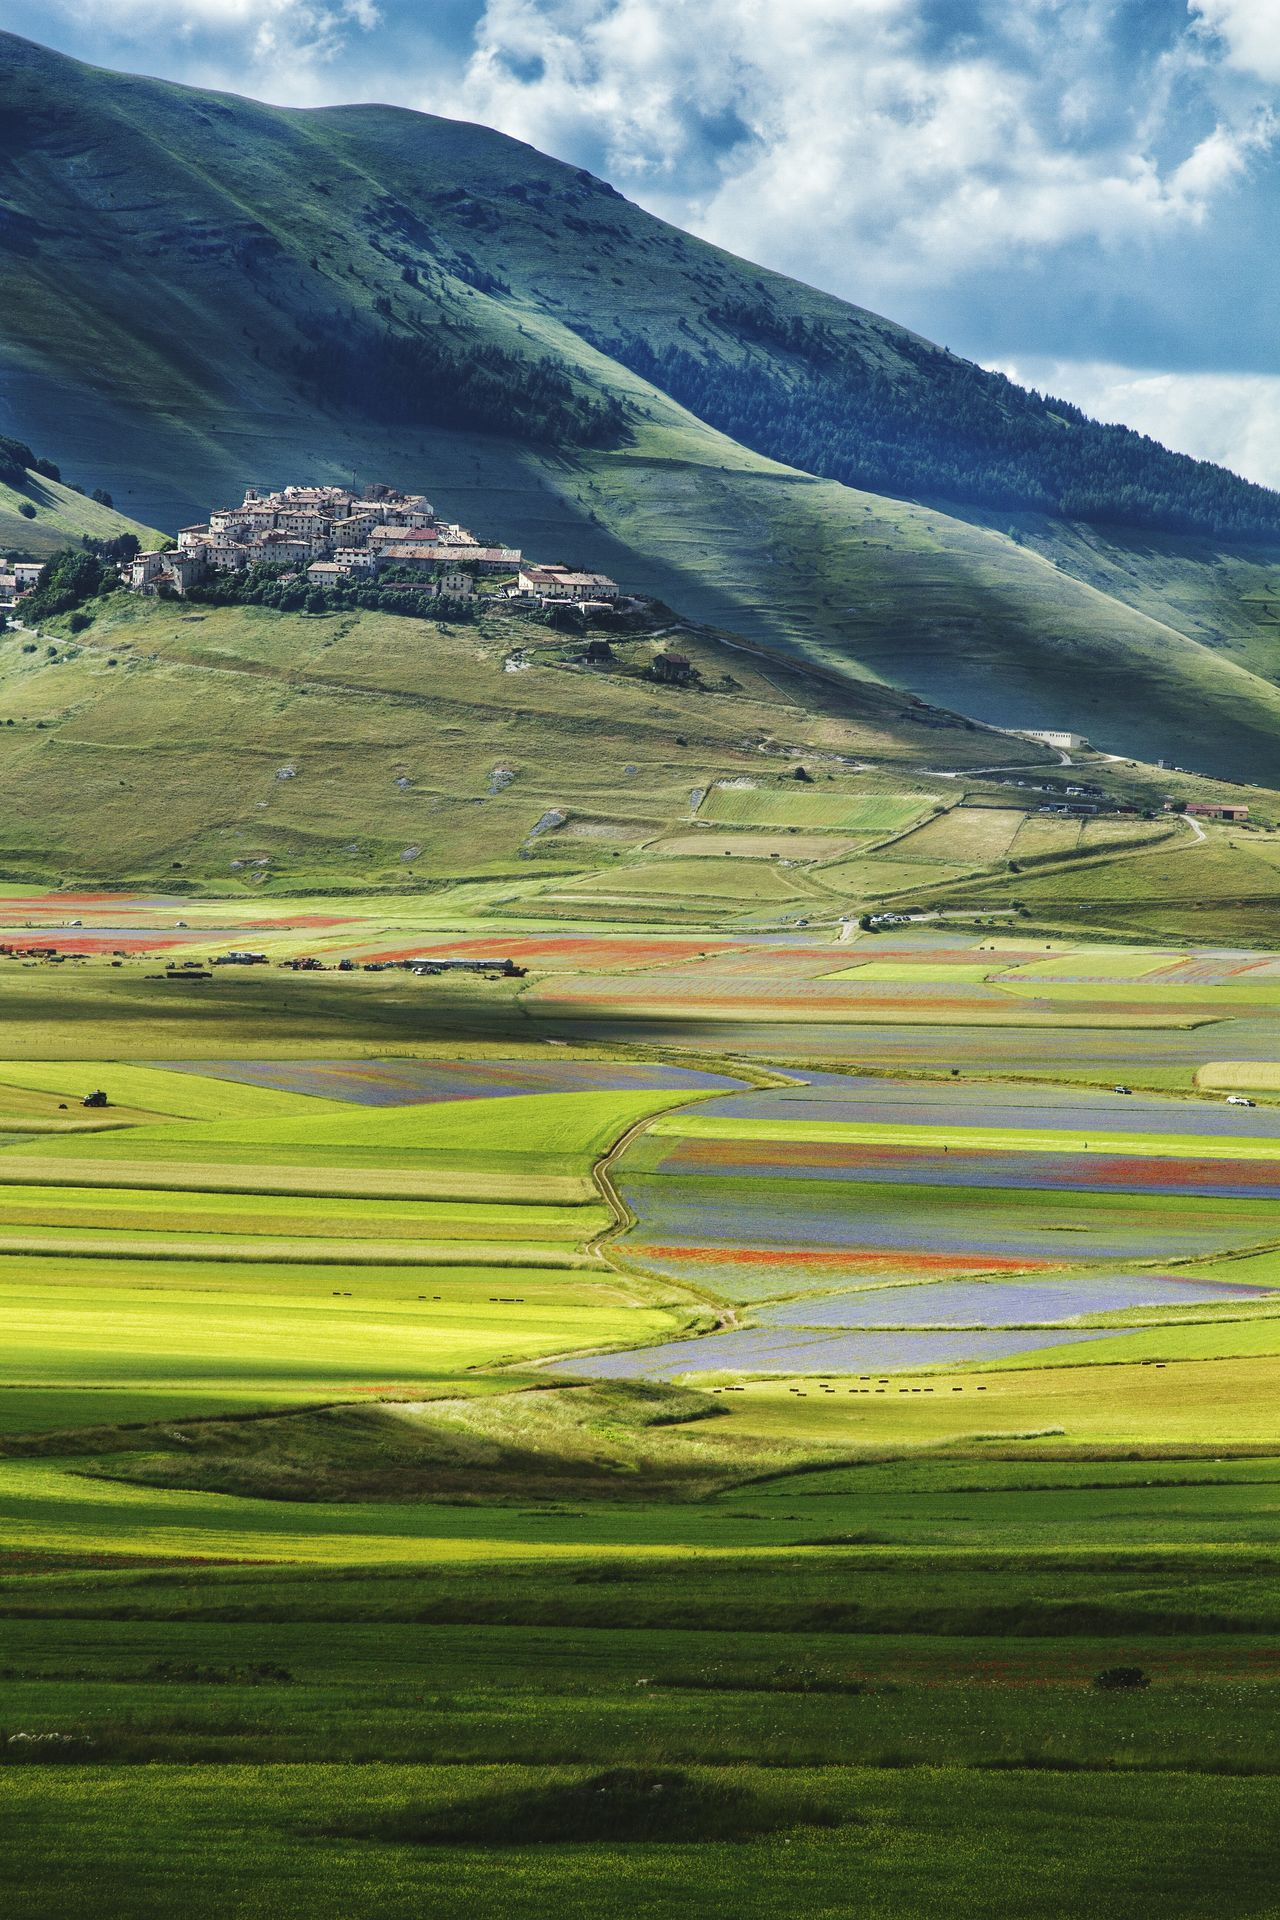 Castelluccio di Norcia Castellucciodinorcia Fioriture Color Explosion Landscape_photography EyeEm Nature Lover EyeEmbestshots Eyeemphotography Landscape_Collection Landscape #Nature #photography Nature Nature_collection Blooming Season  Landscape_photography Landscape_lovers EyeEm Gallery Naturephotography Landscapes Traveling Destination Nature Photography Vibrant Color Landscape Outdoors Relaxing Taking Photos